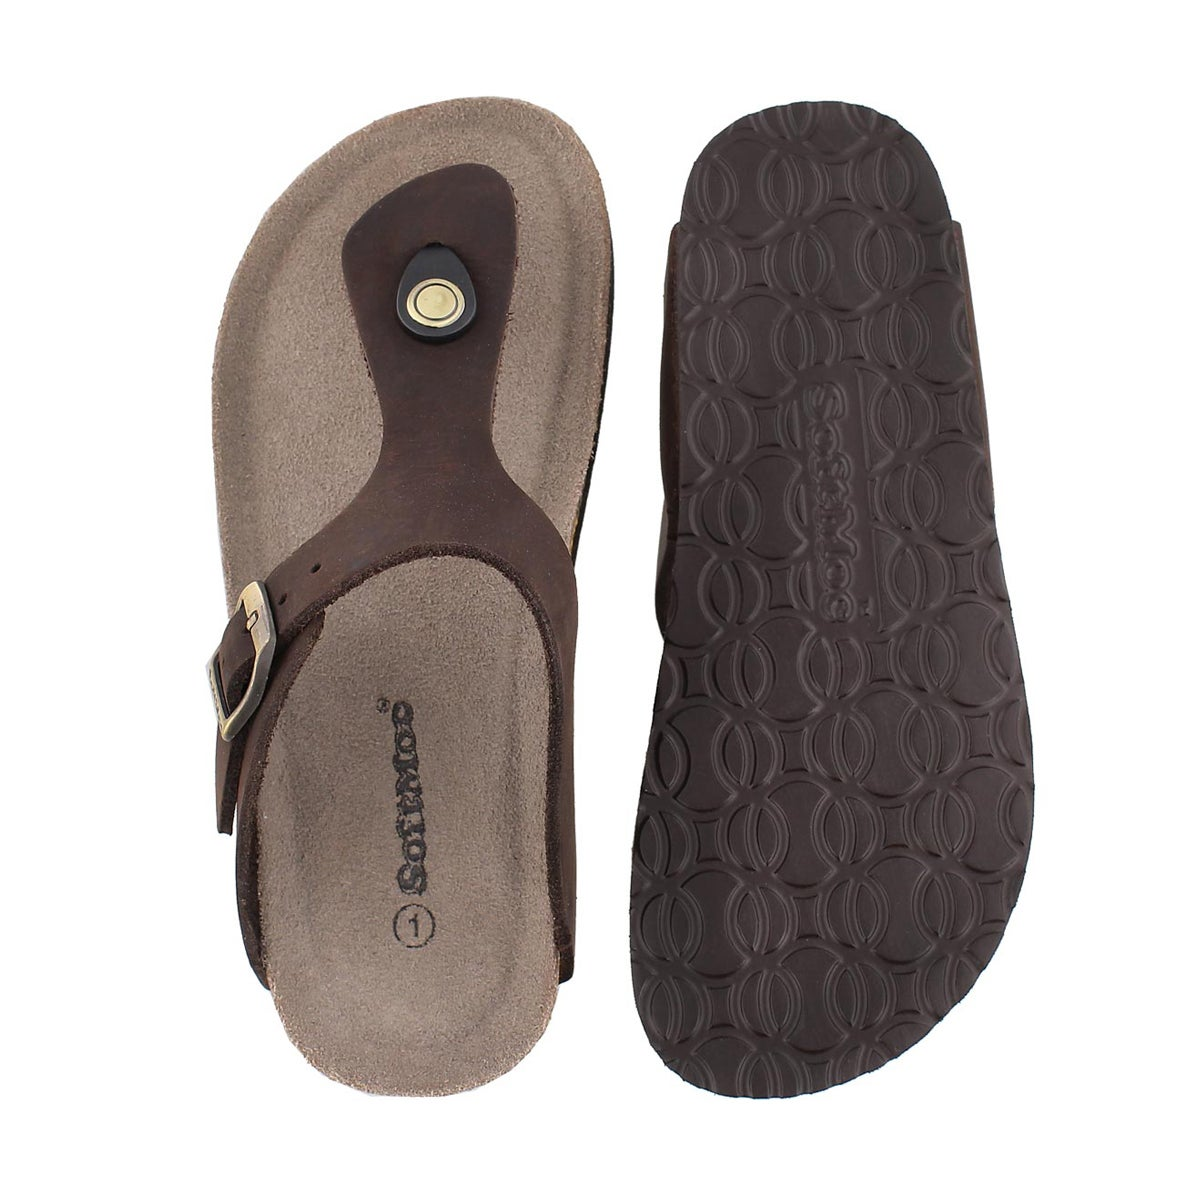 Grls Angy 3 brown crz thong sandal